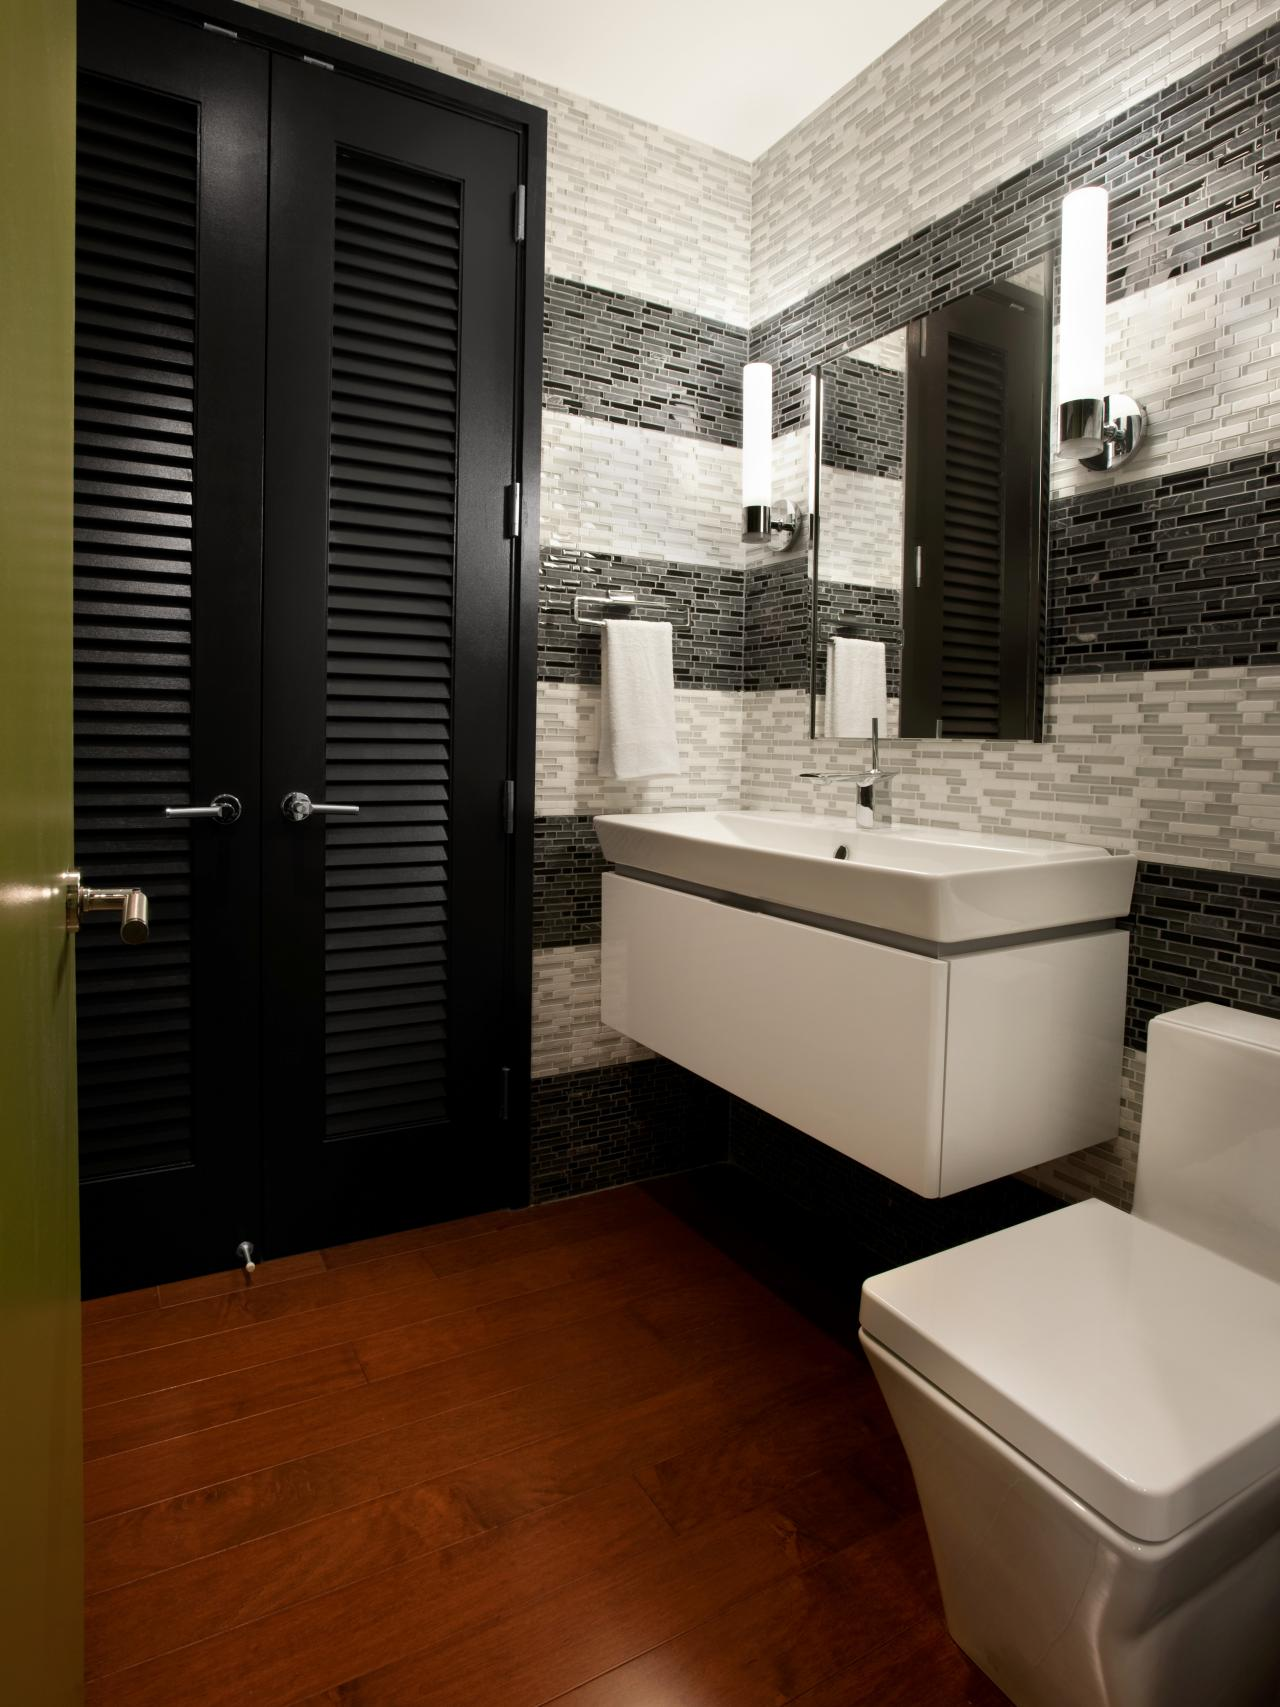 Excellent modern bathrooms tags: zxfpbms